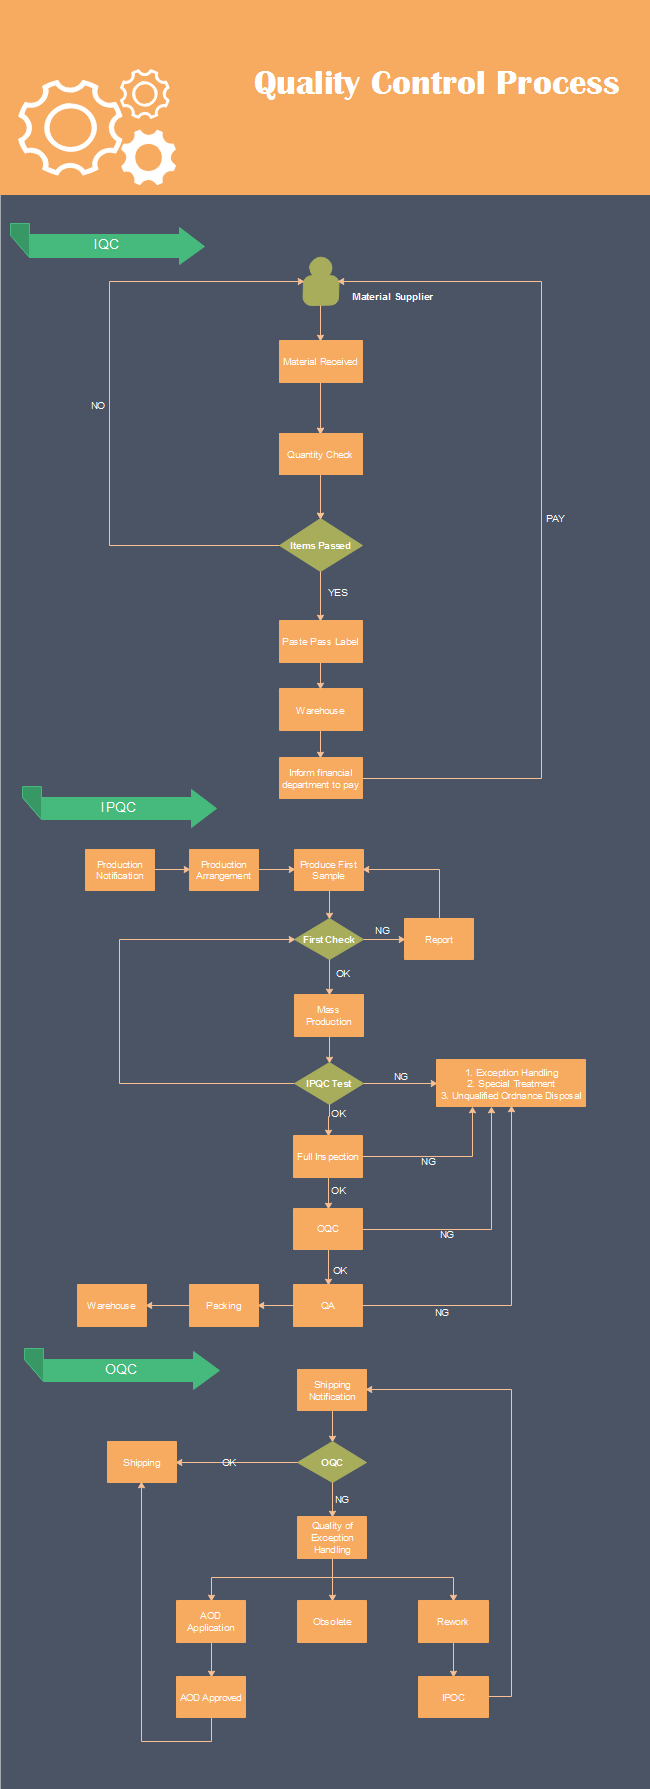 Quality Control Flowchart | Free Quality Control Flowchart Templates